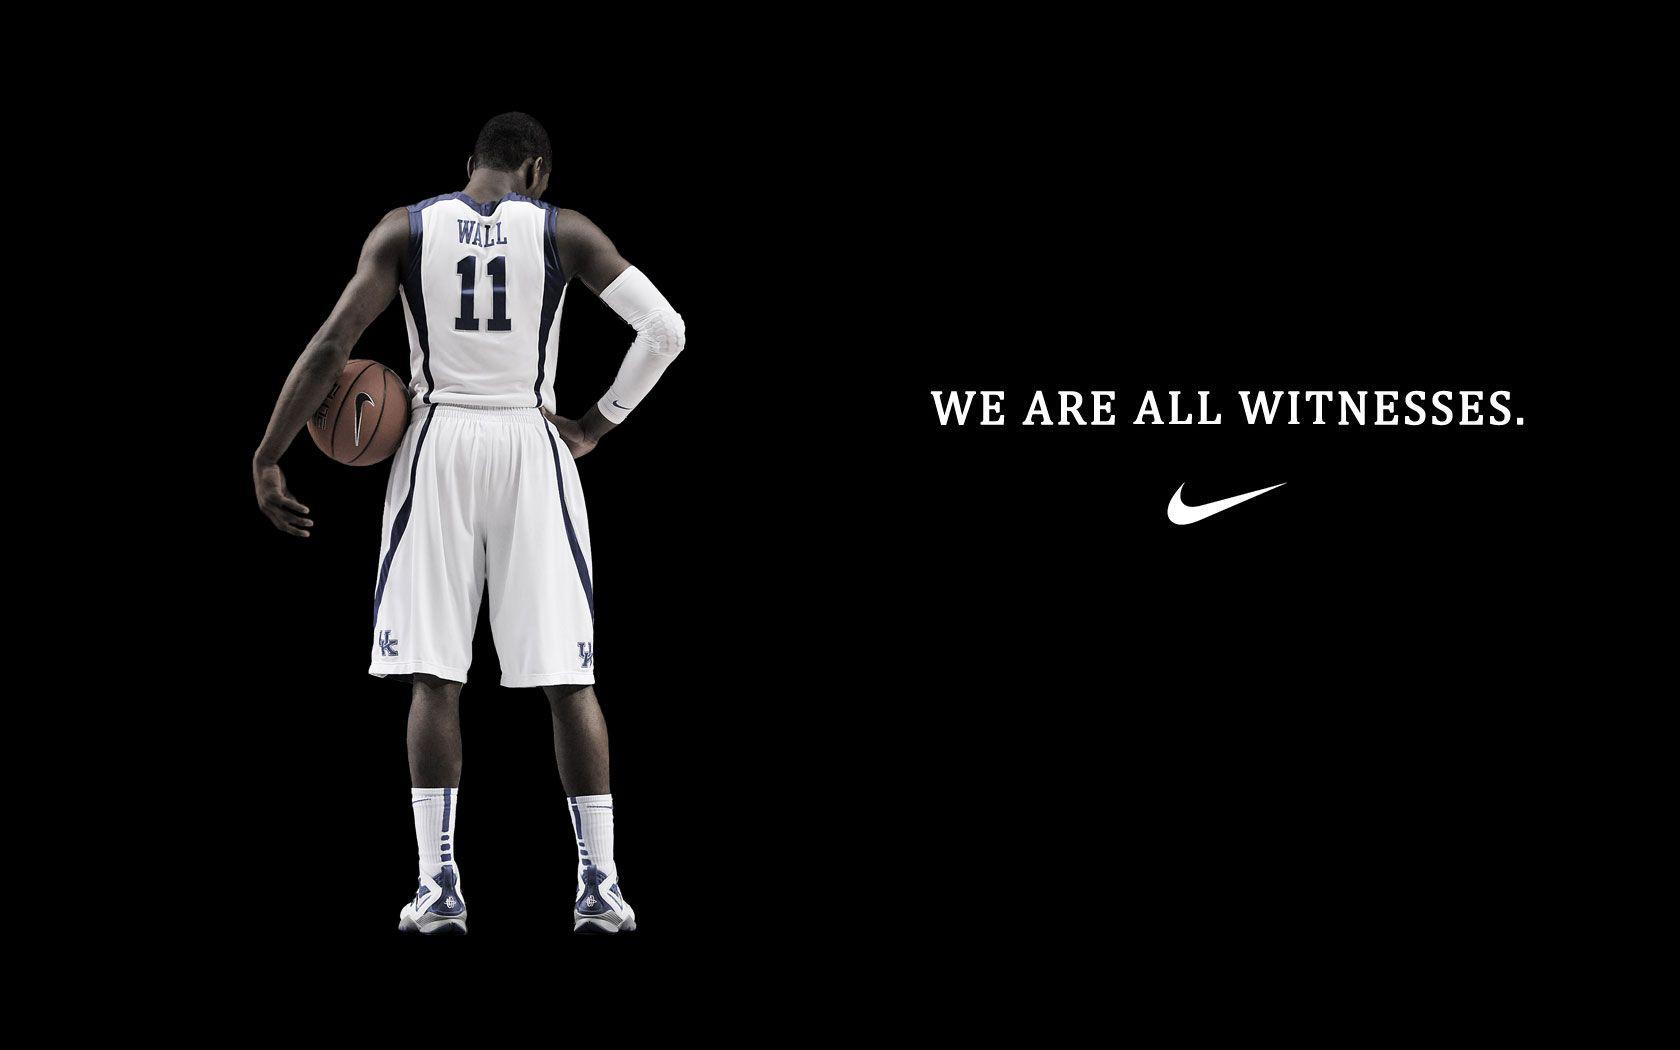 Nike Nba Wallpapers Quotes: Nike Basketball Quotes Wallpapers